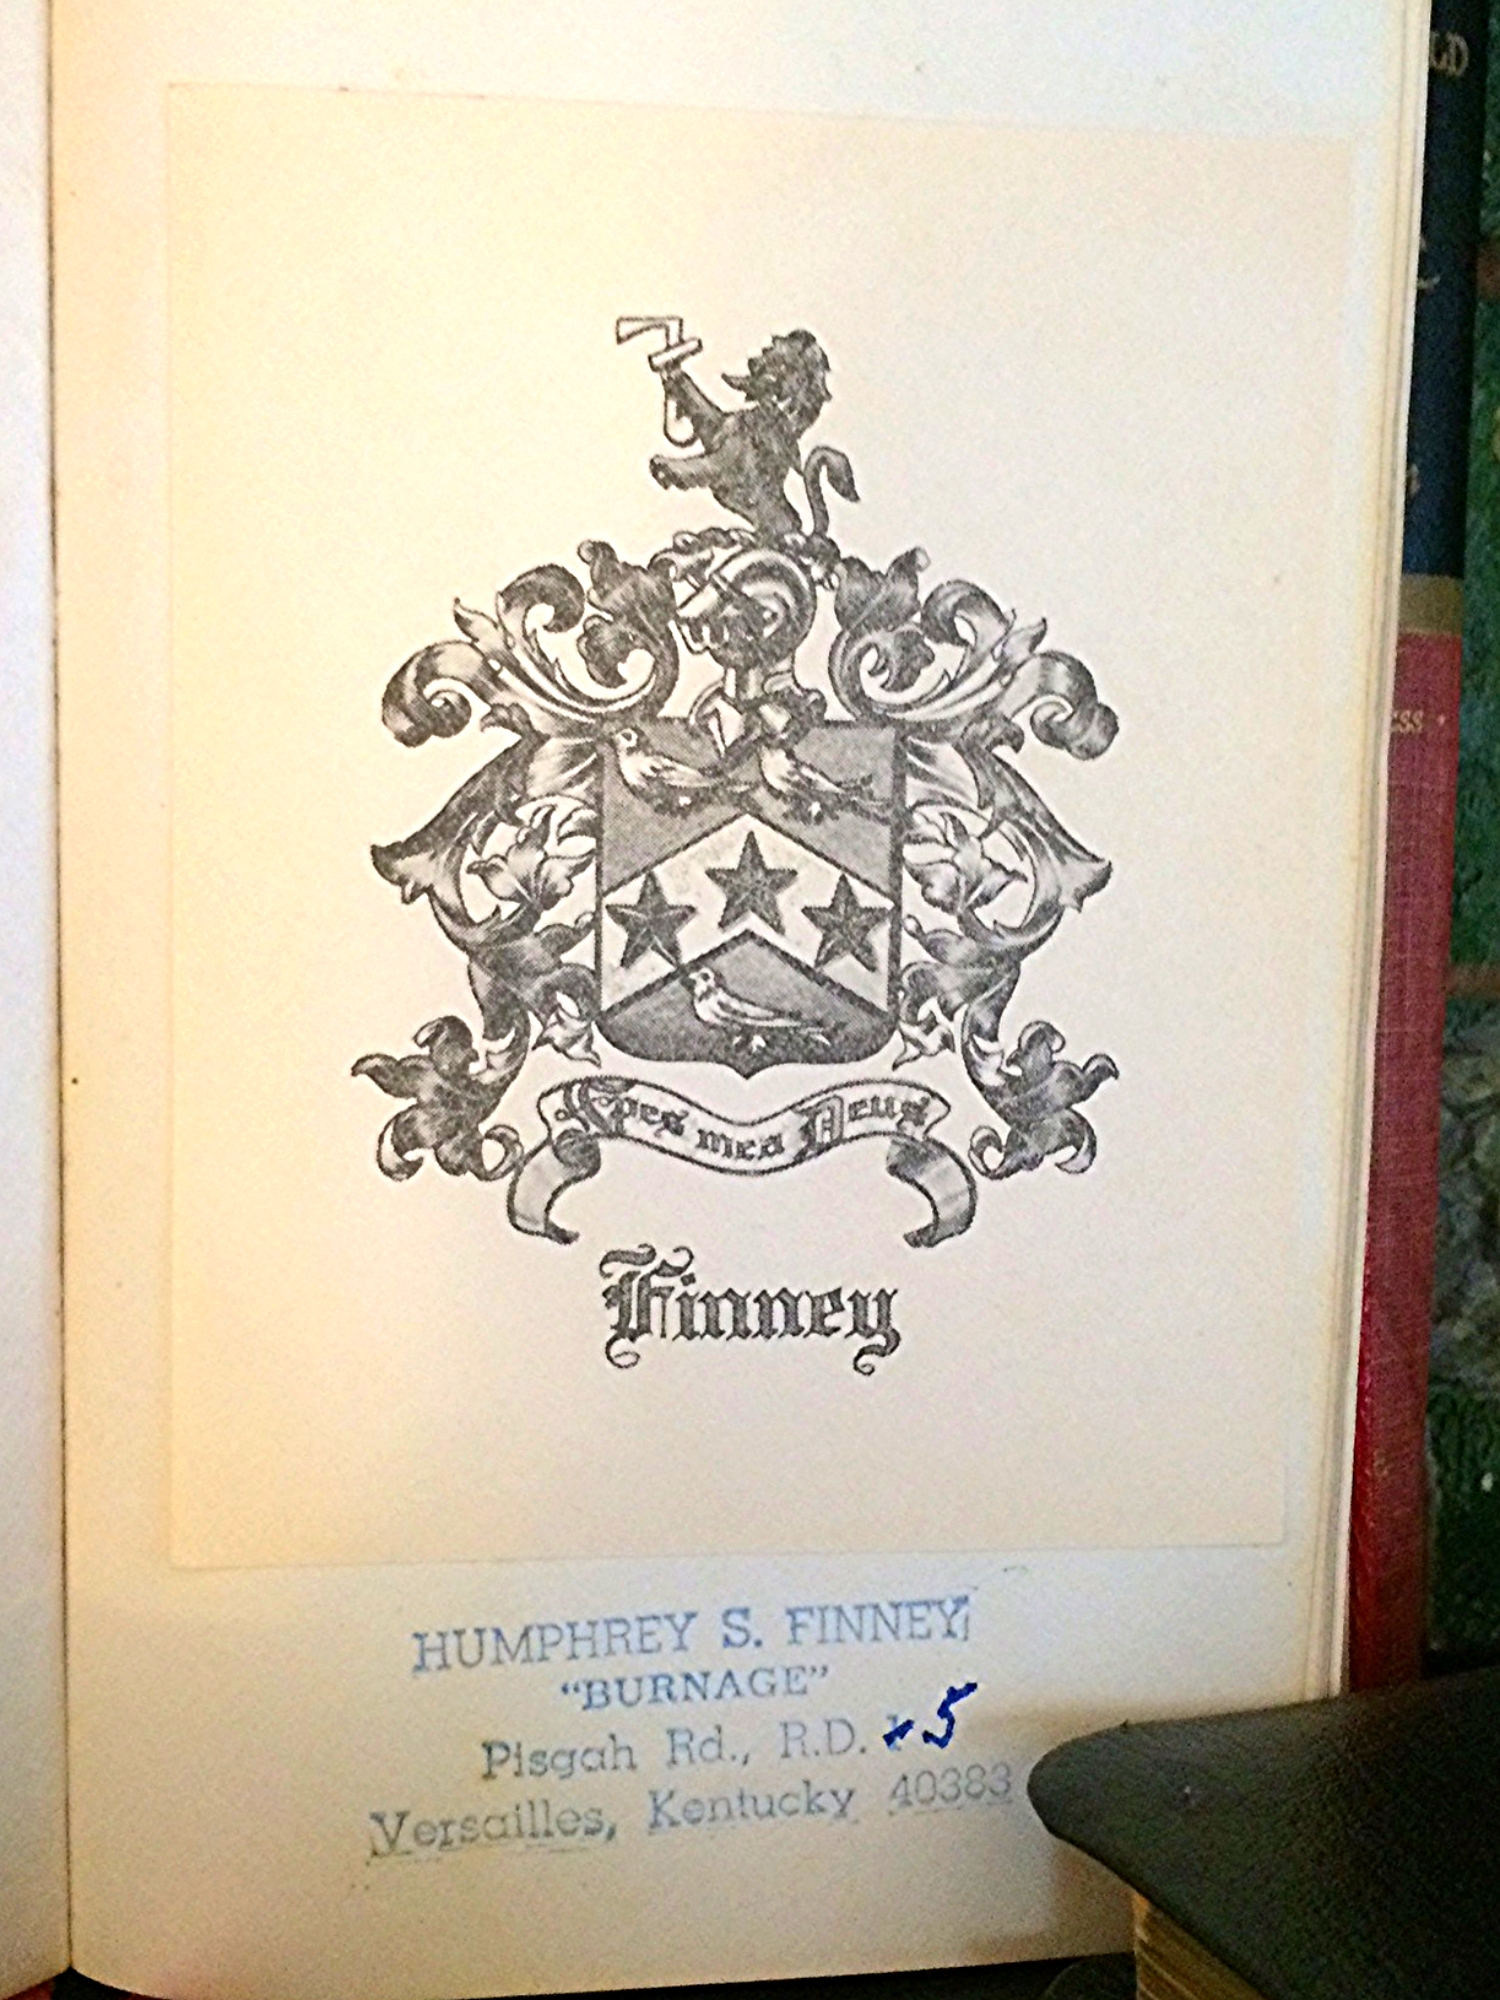 The Finney family Crest on first pages.